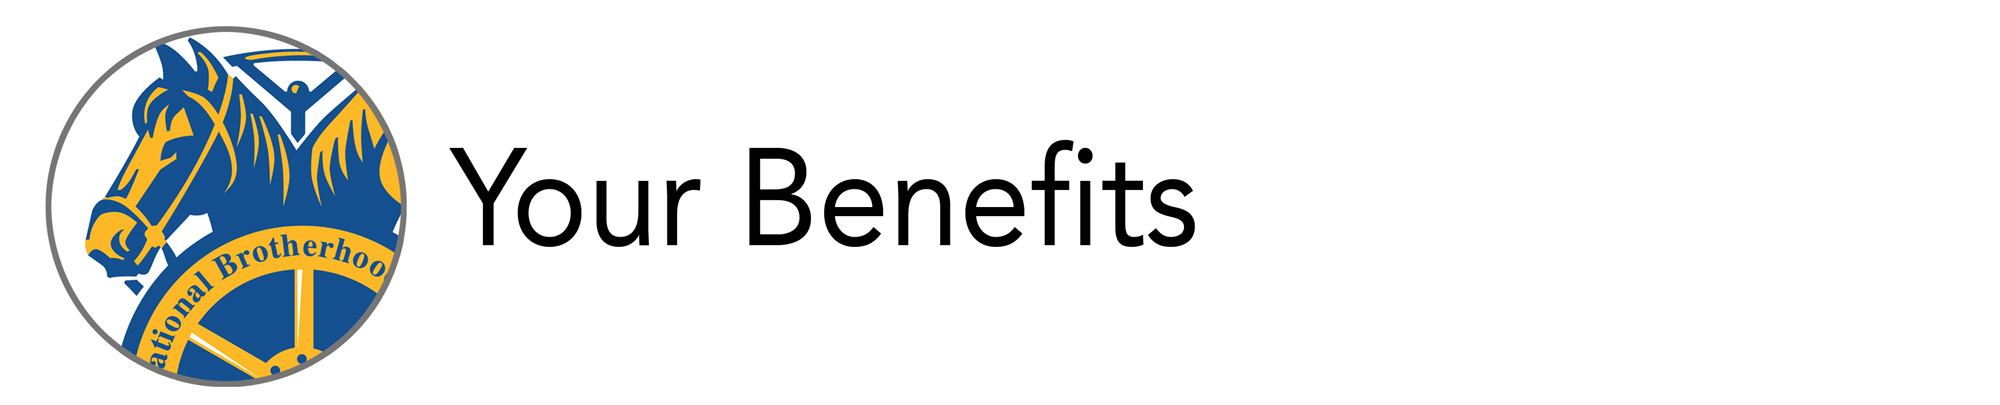 Your Benefis